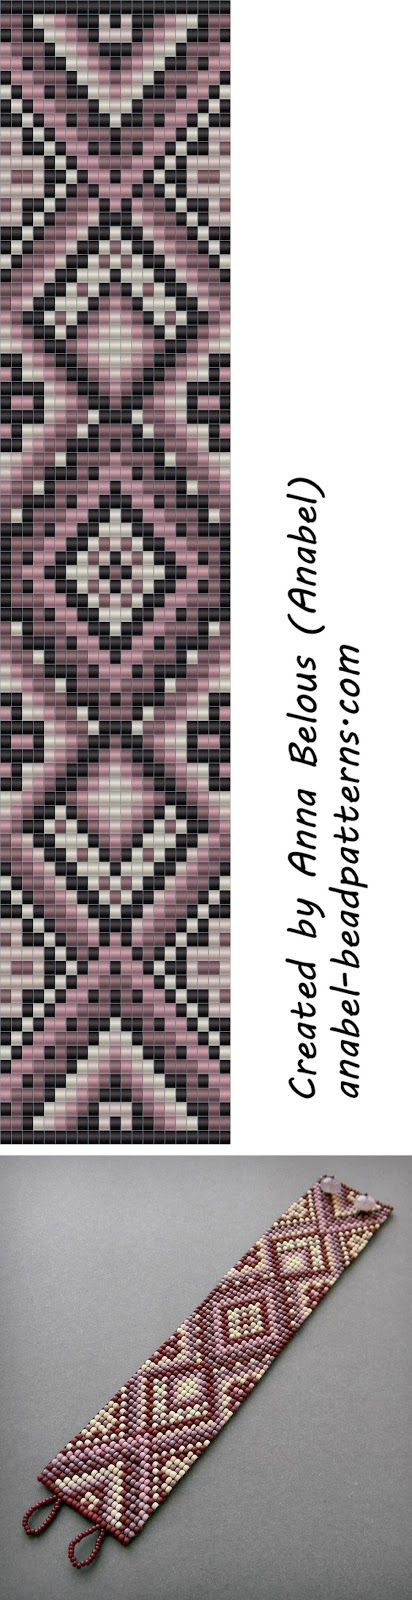 scheme beading bracelet weaving patterns beaded pattern